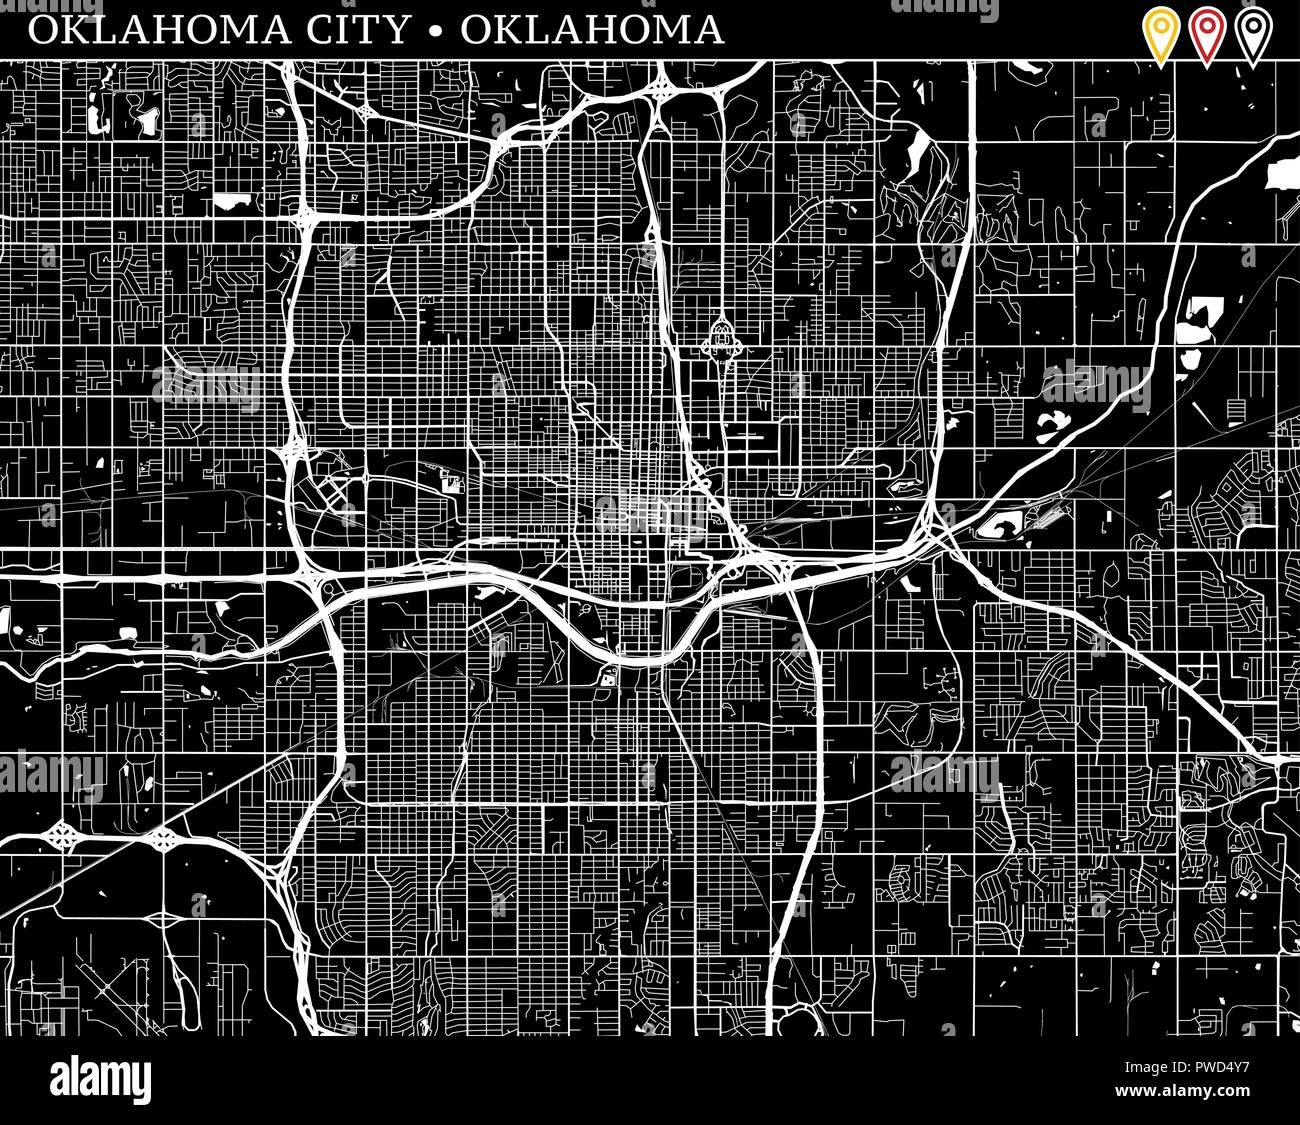 Simple map of oklahoma city oklahoma usa black and white version for clean backgrounds and prints this map of oklahoma city contains three markers